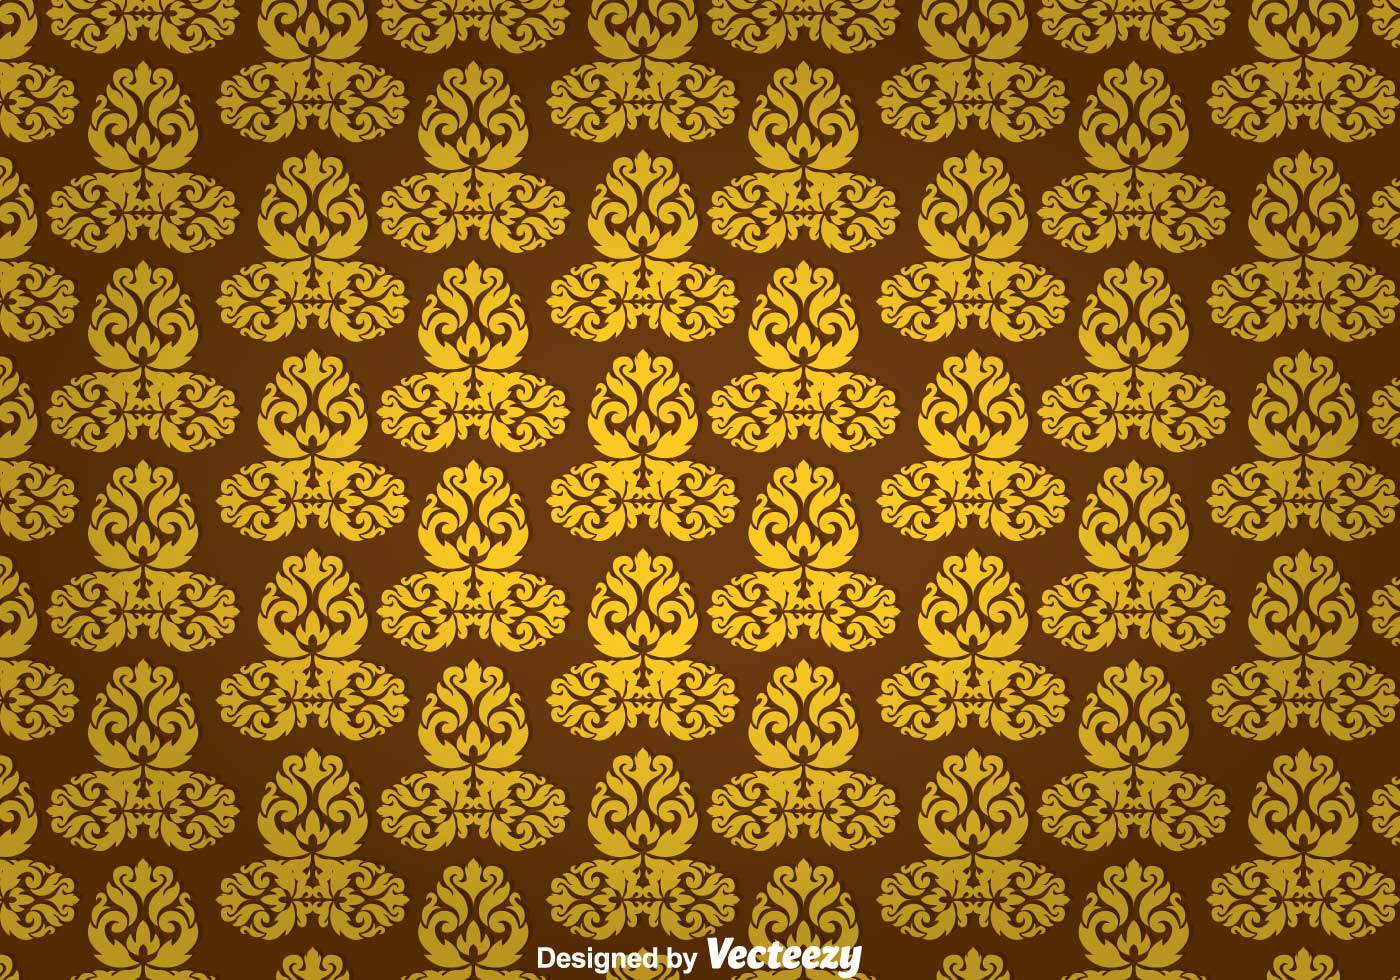 Gold Ornament Wall Tapestry - Download Free Vector Art, Stock ...